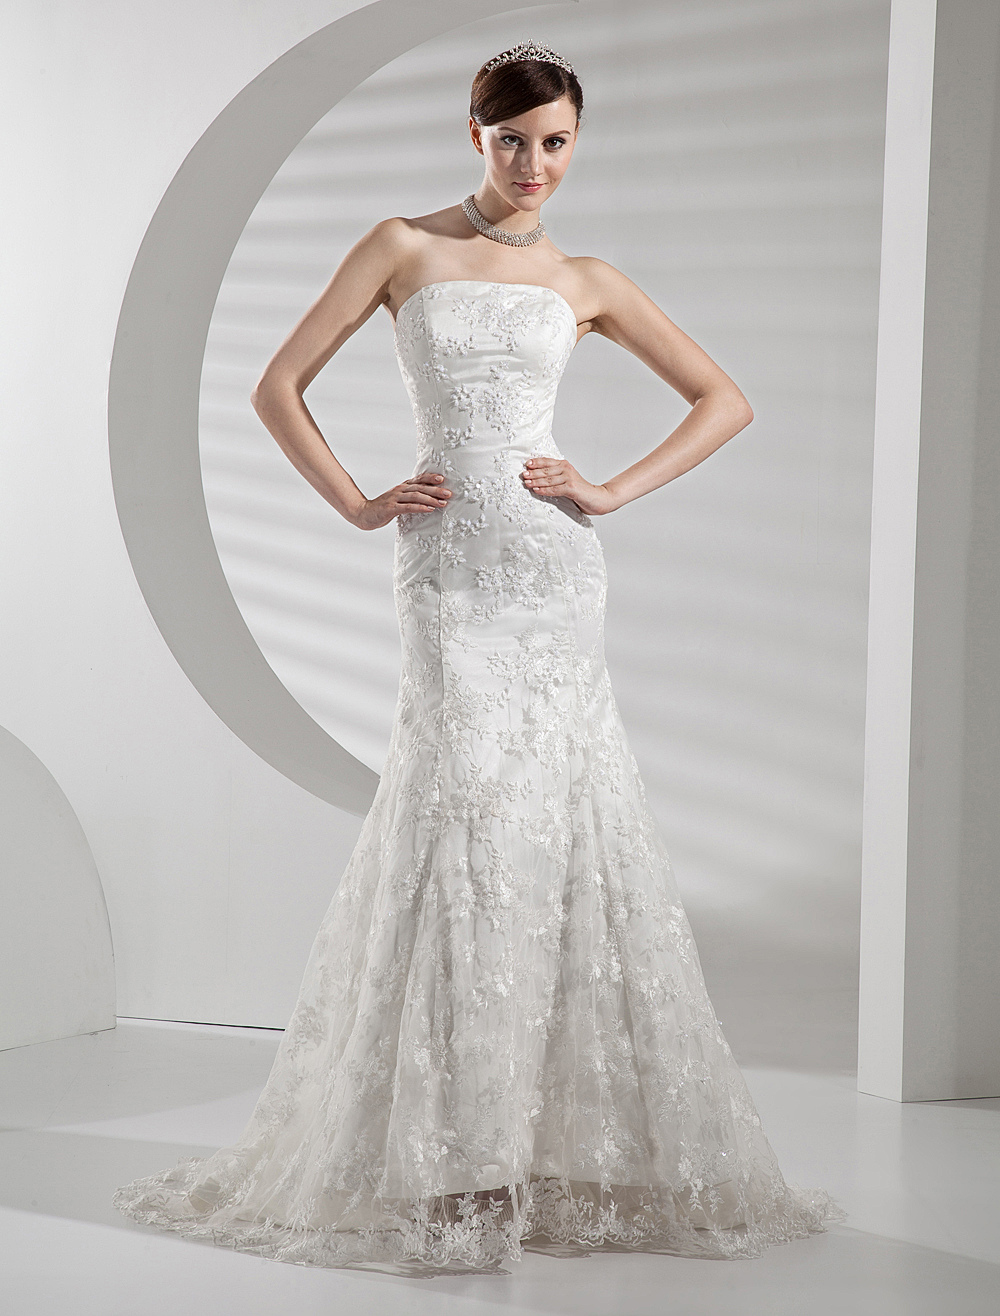 Lace Wedding Dresses Strapless Mermaid Bridal Gown Trumpet